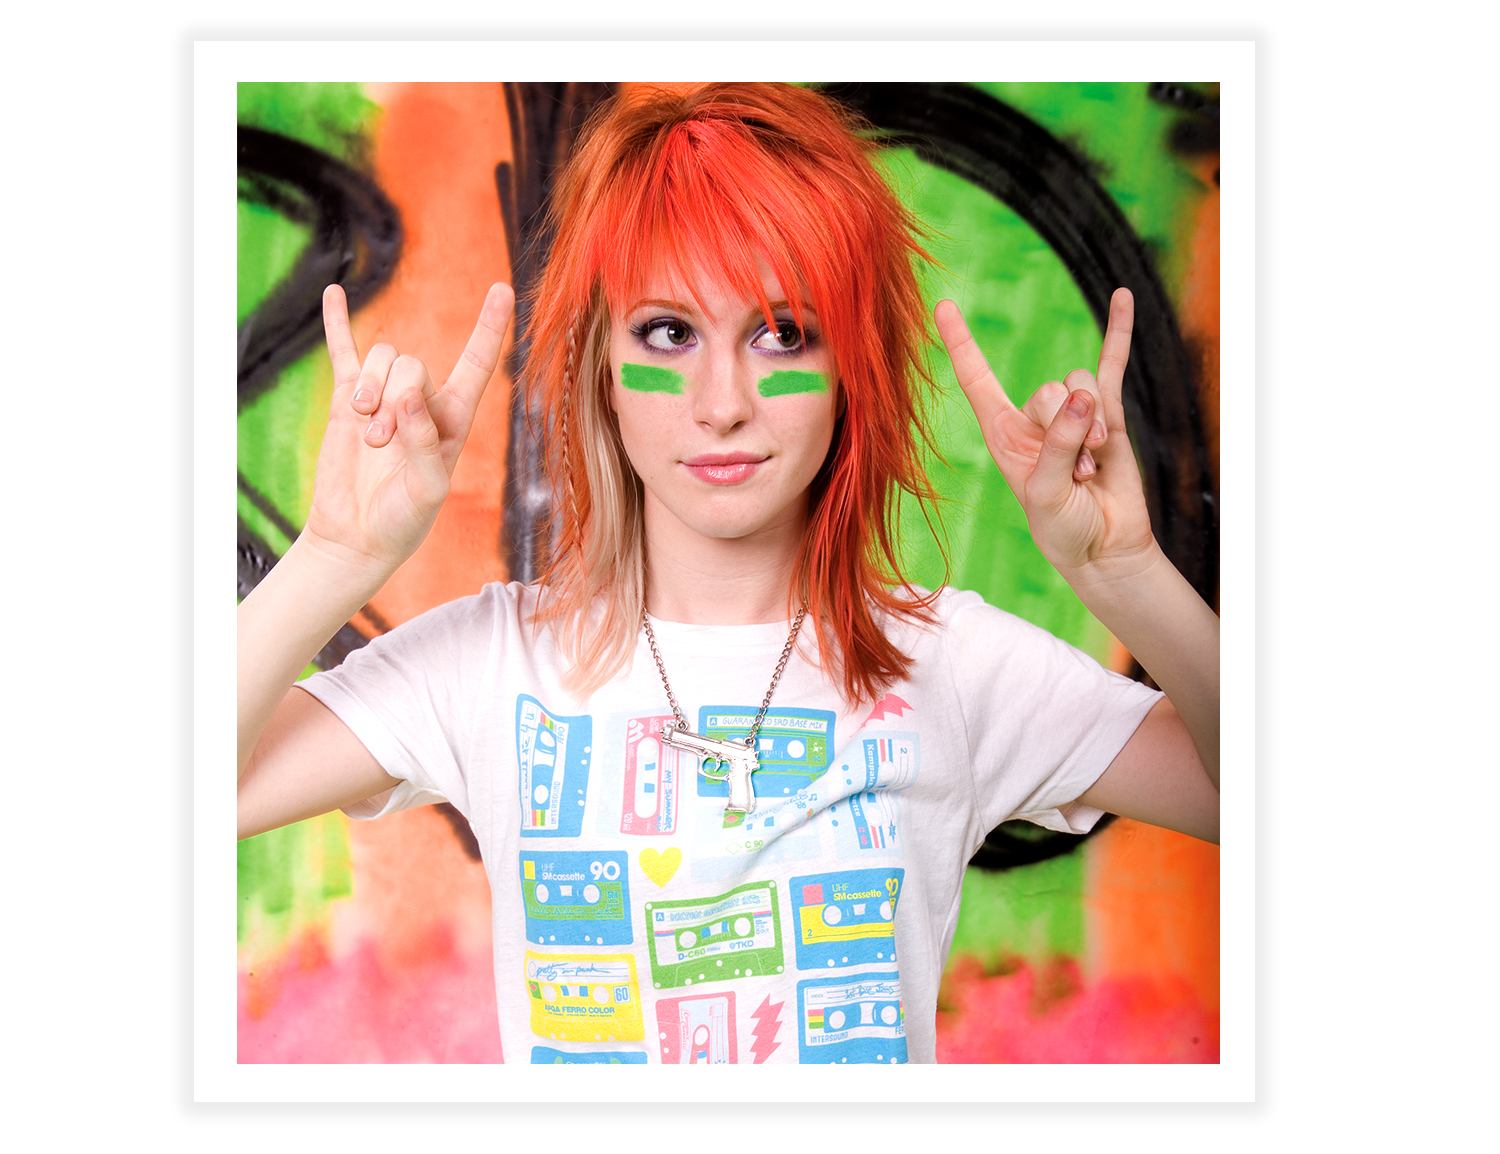 JS_HT_Lifestyle_Paramore.jpg